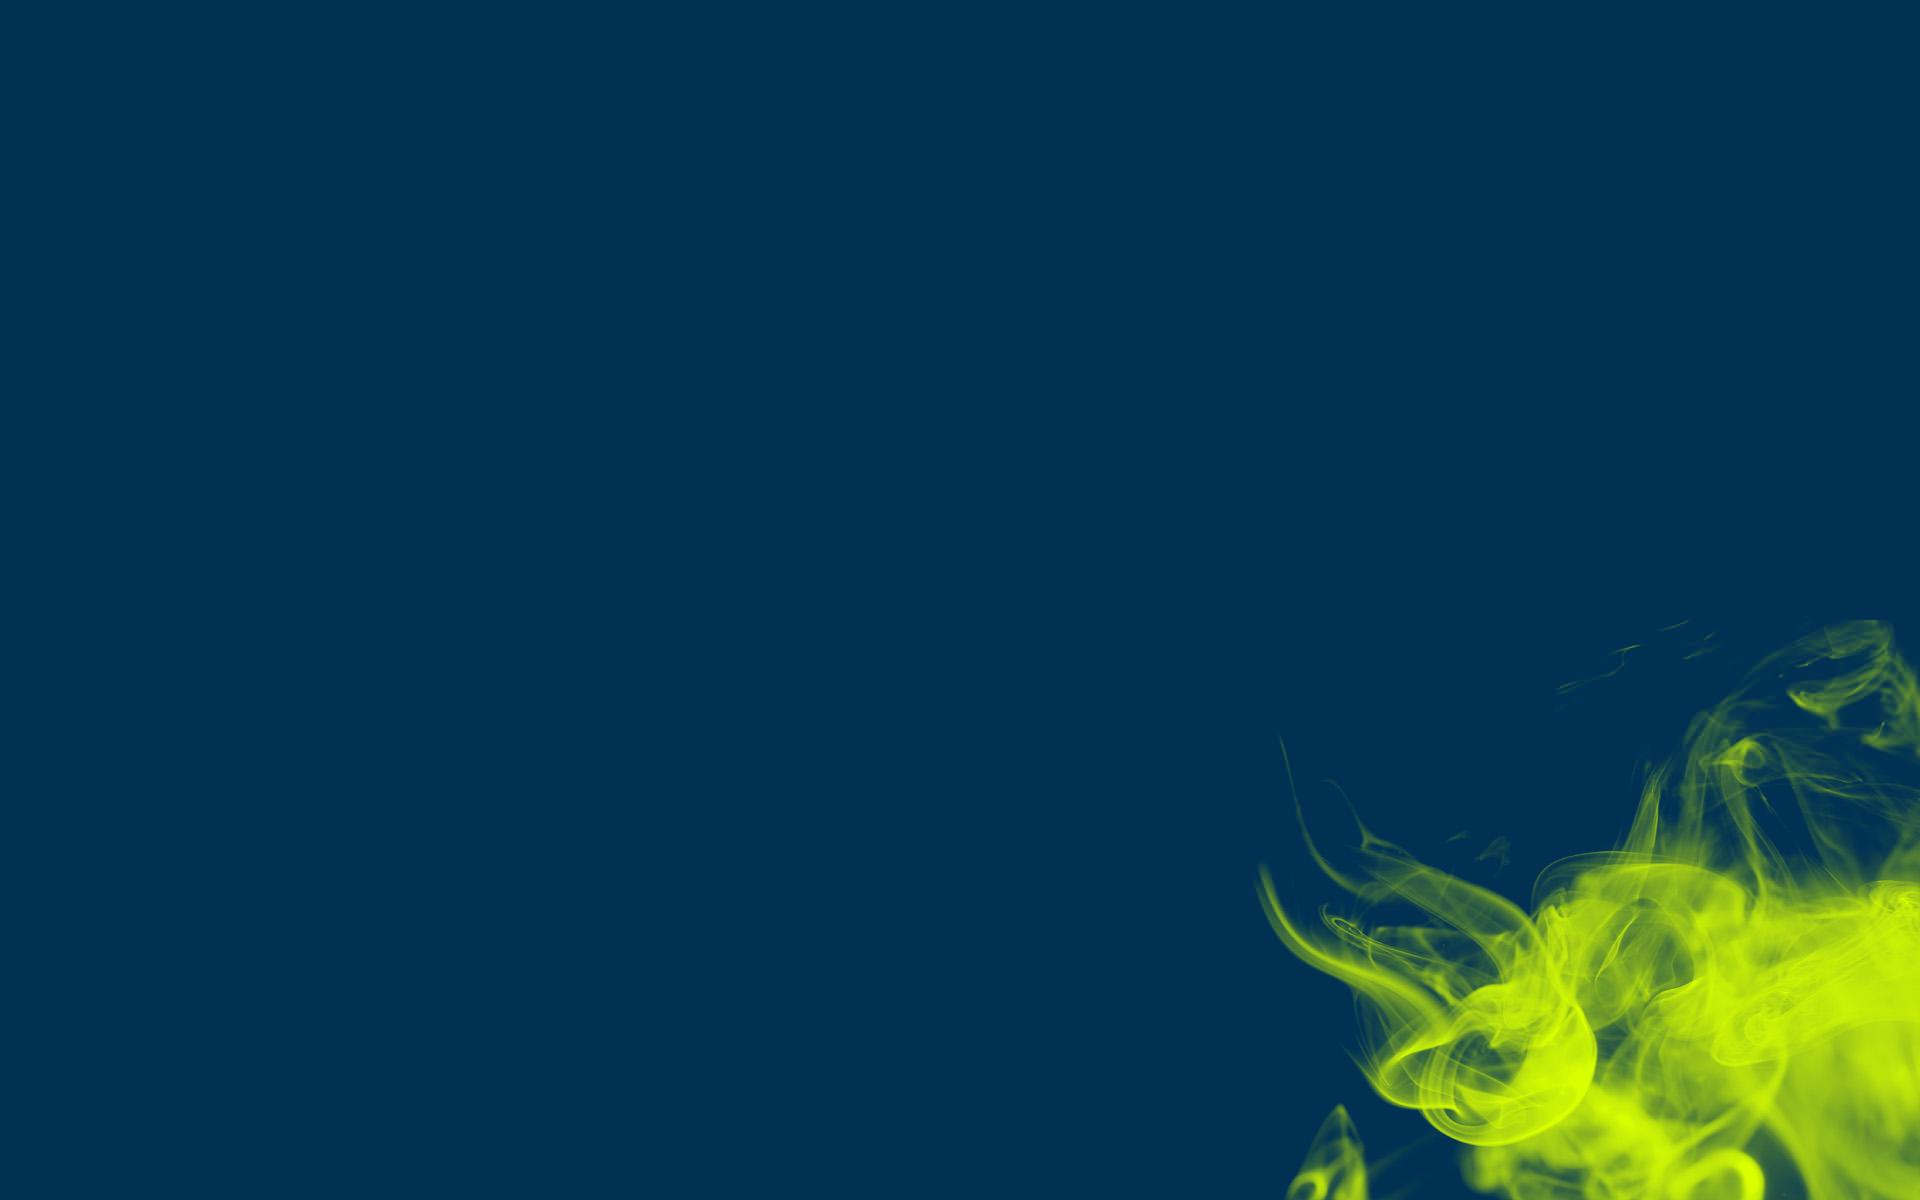 Solid Blue & Yellow Background For Free